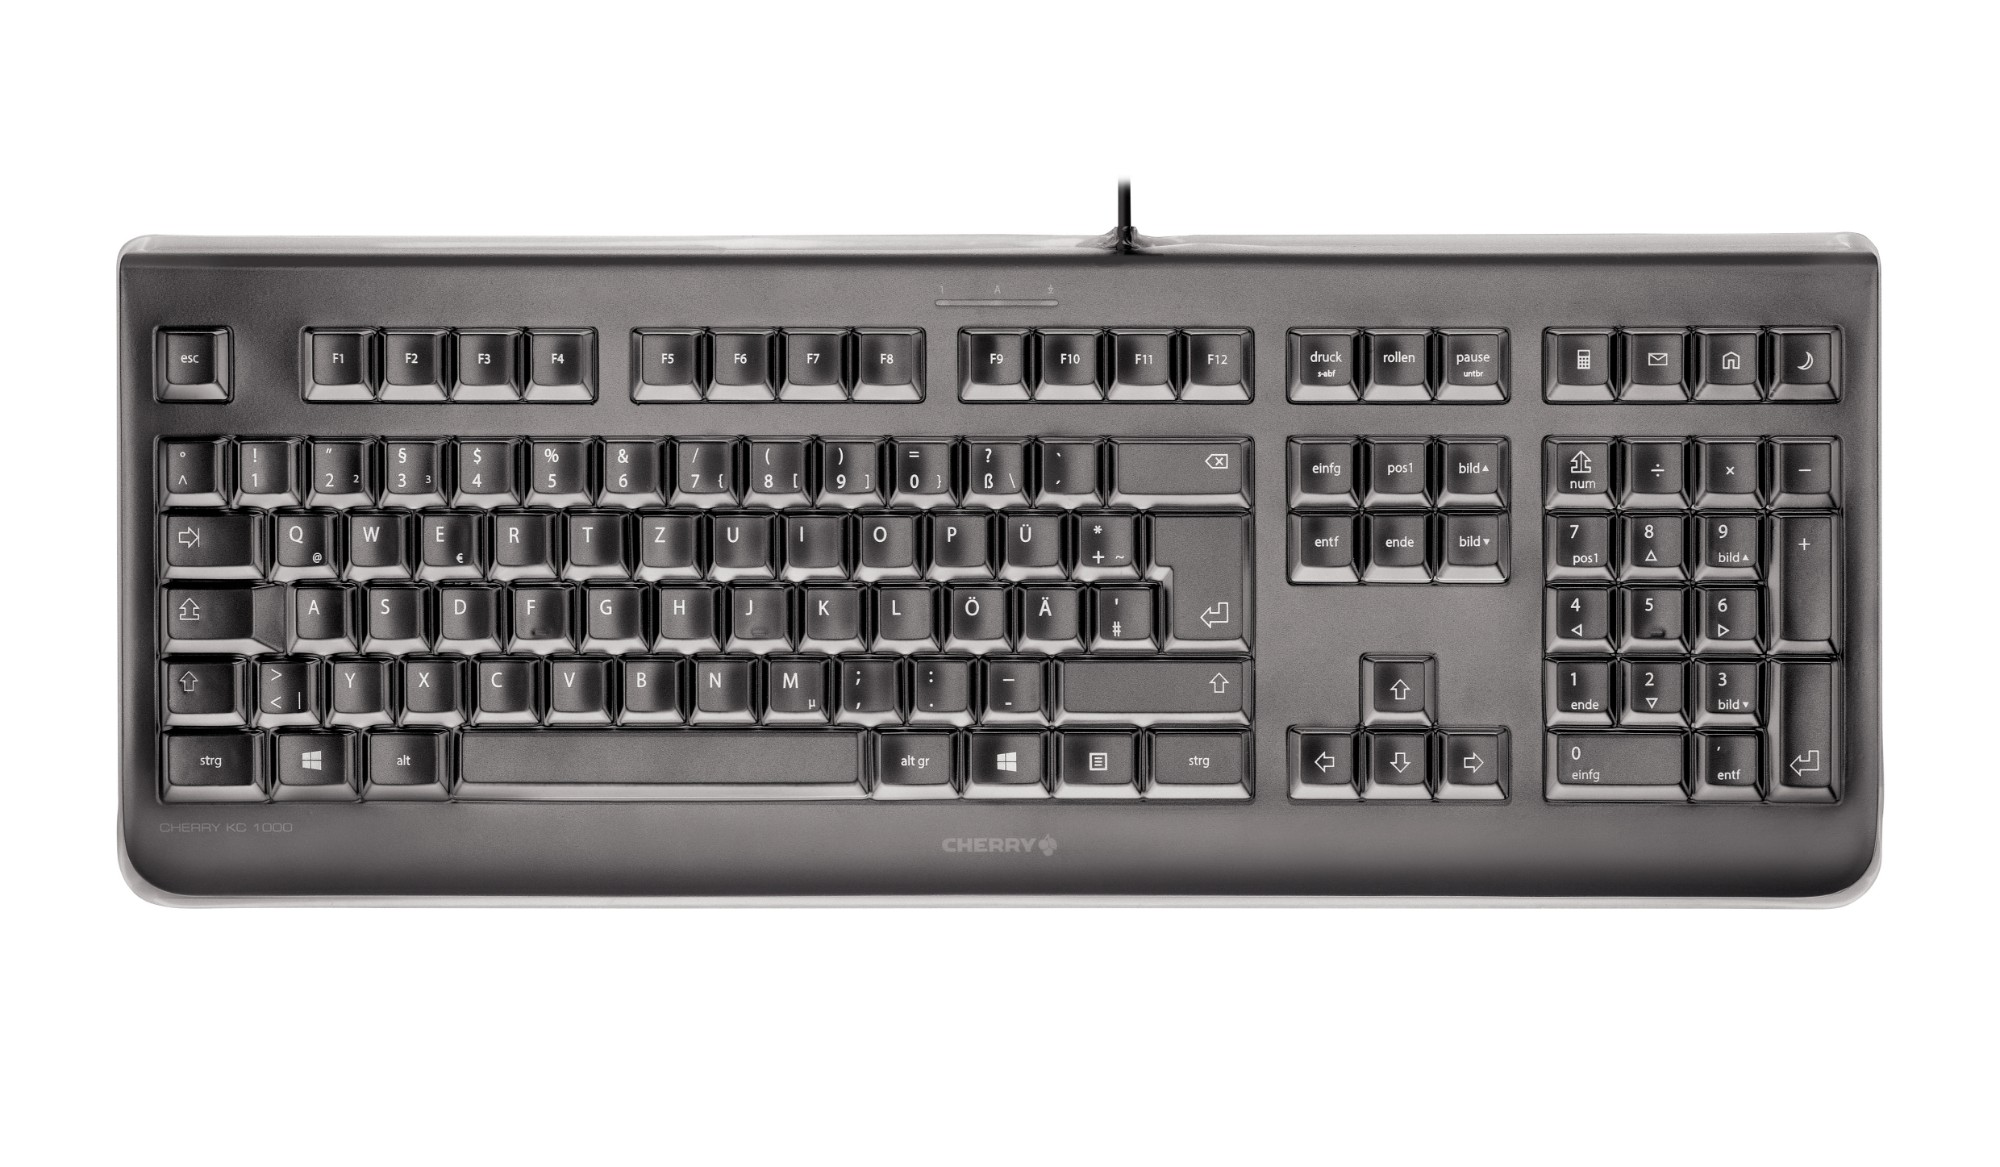 CHERRY KC 1068 USB QWERTY Pan Nordic Black keyboard